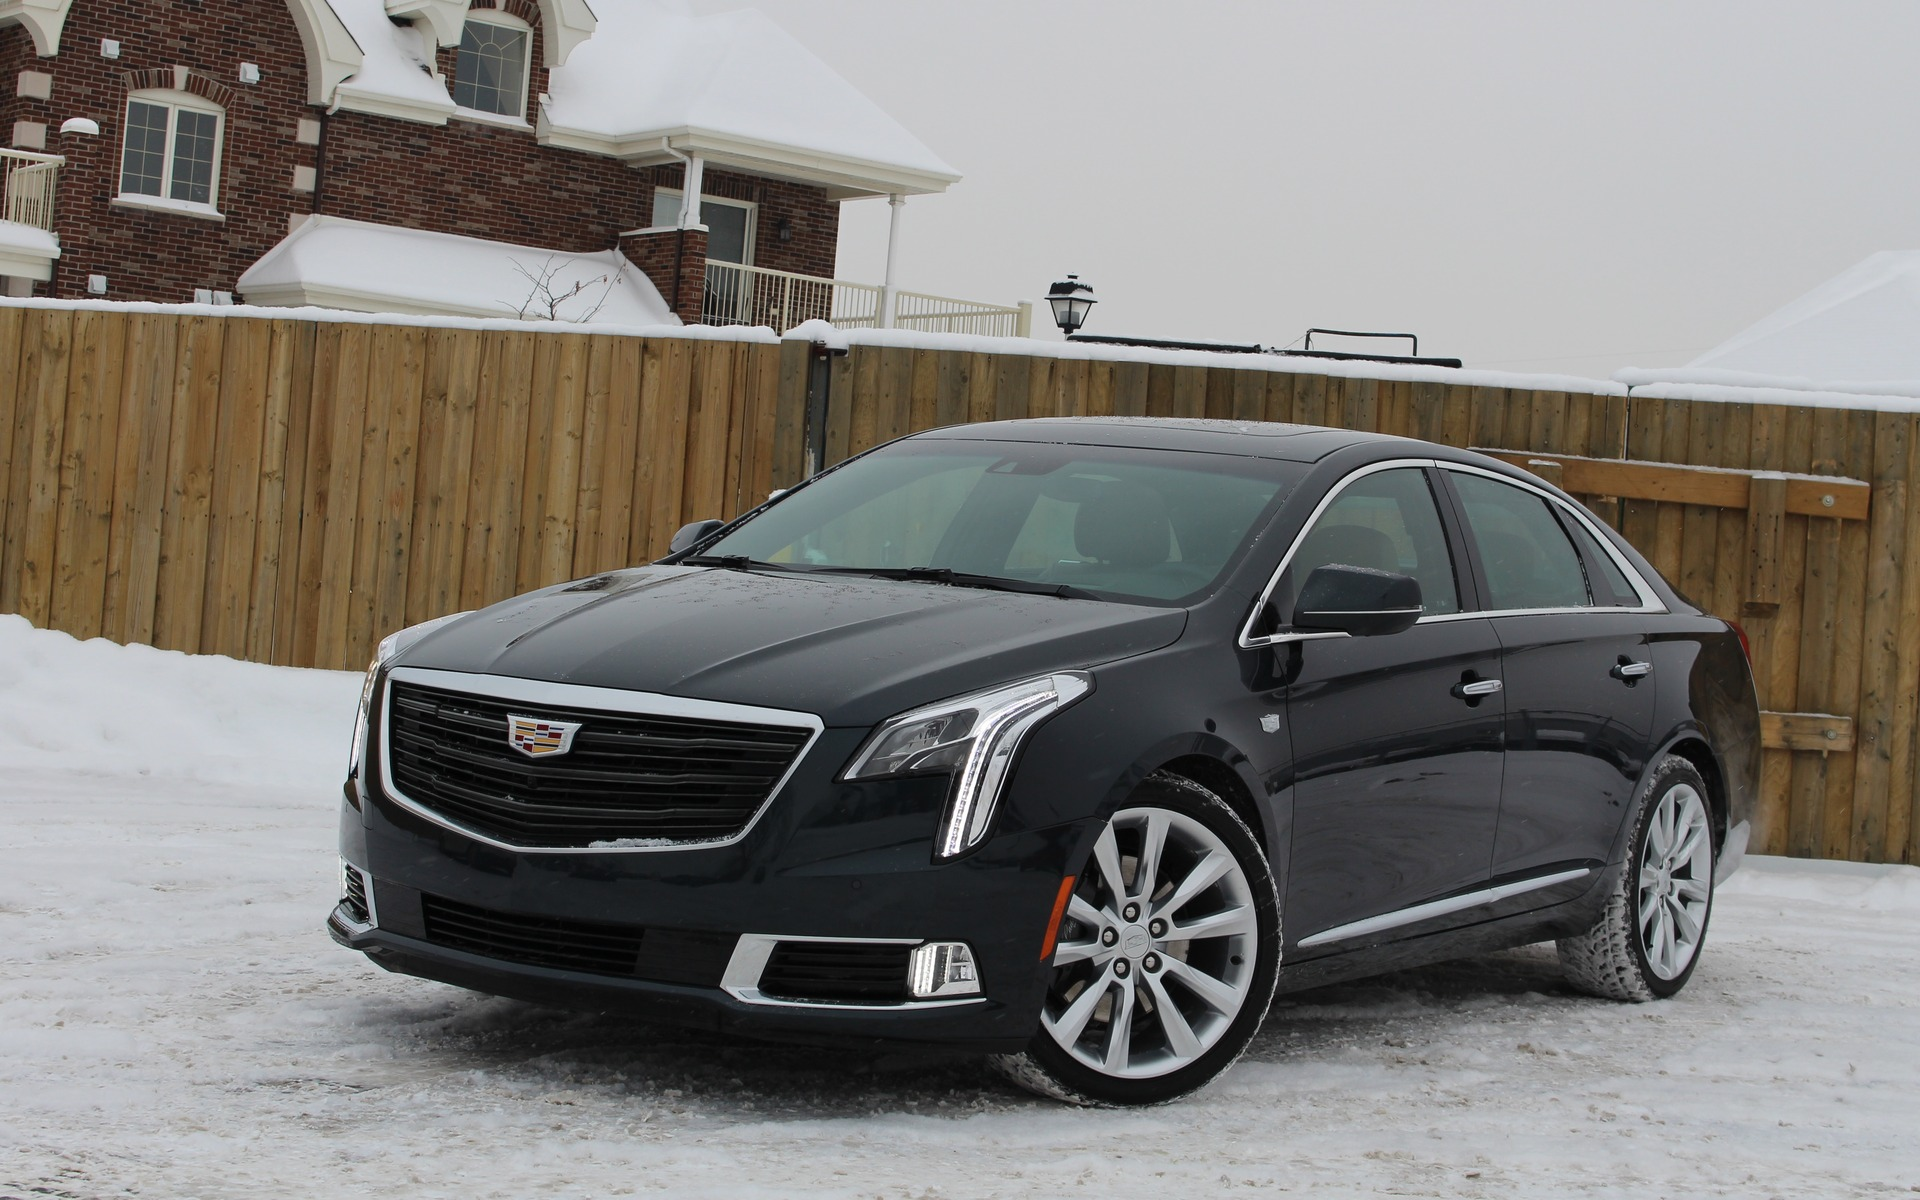 2018 Cadillac Xts V Sport The Classic Caddy The Car Guide